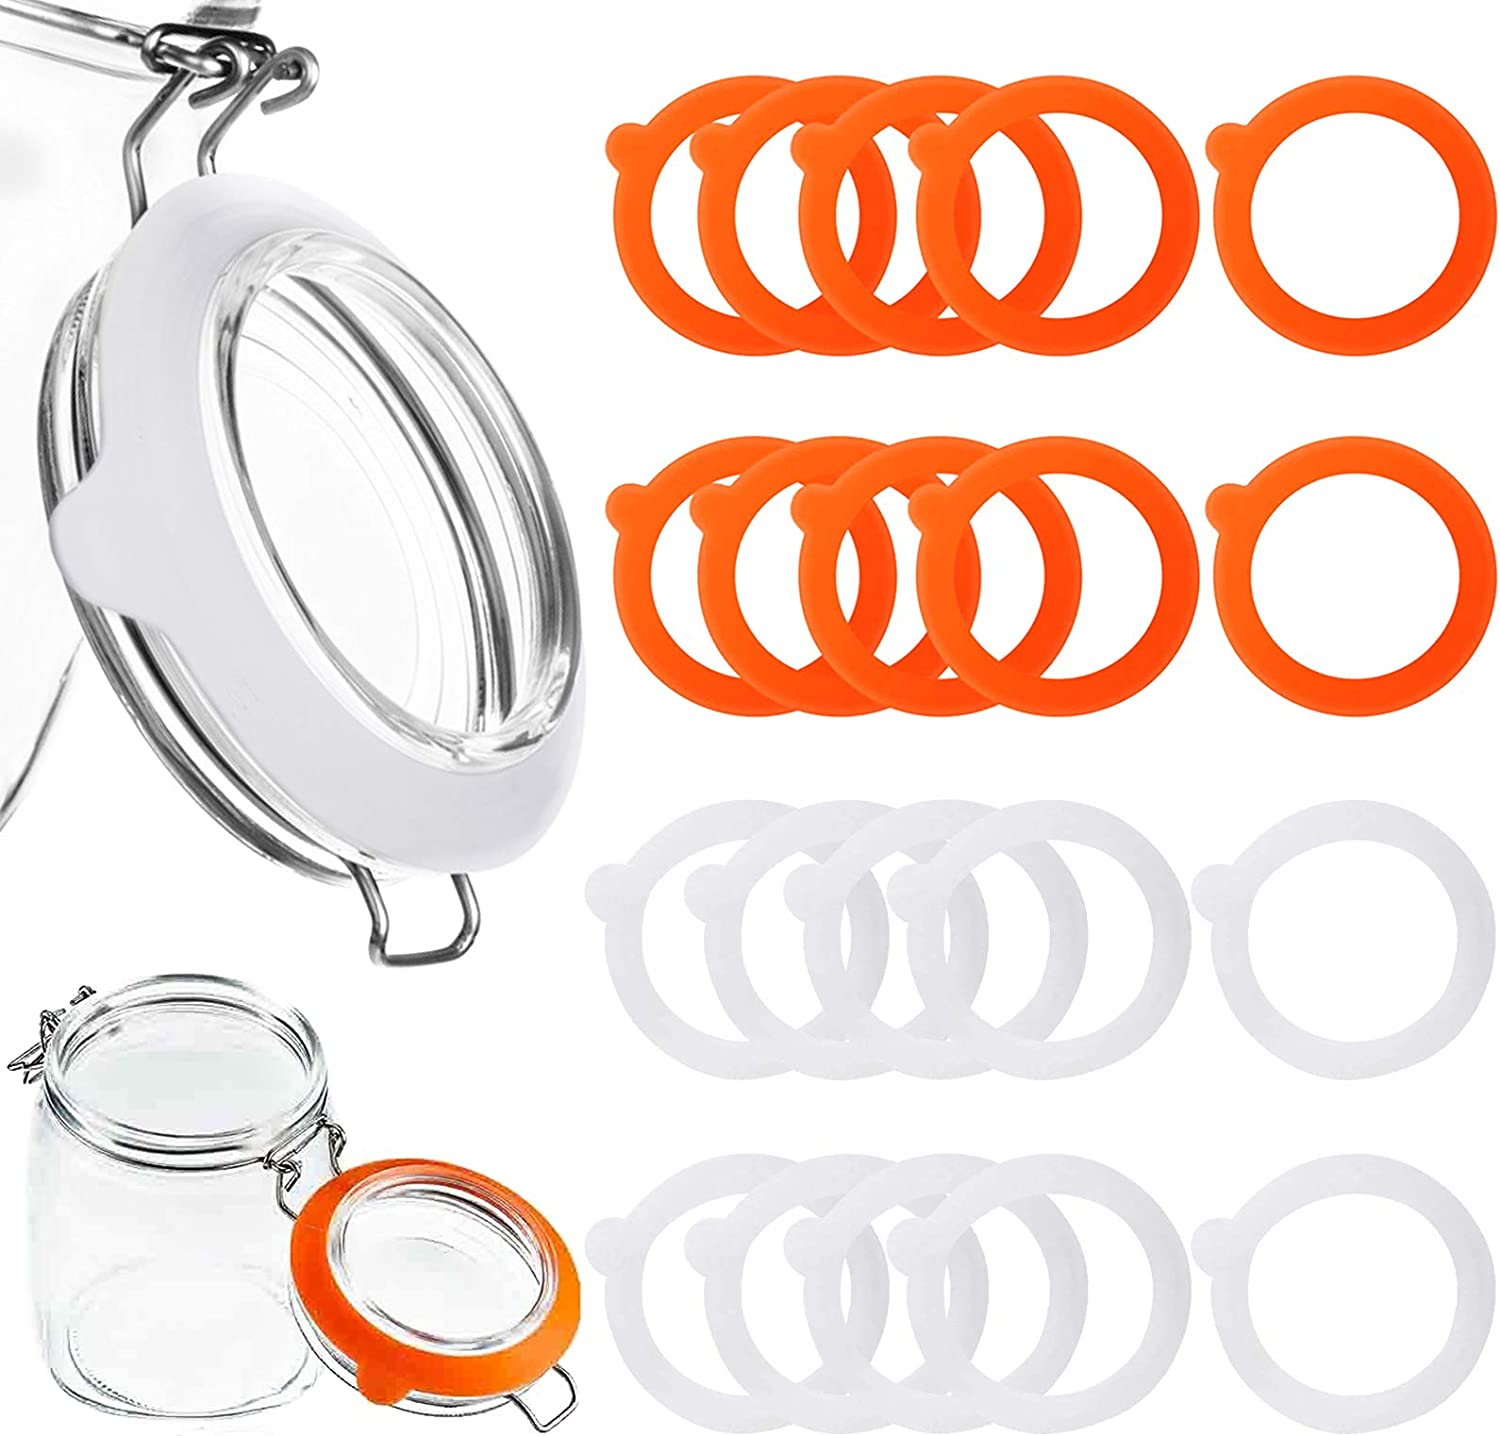 Lanstics 20 Pieces Silicone Jar Gaskets Replacement, Silicone Seals Airtight Silicone Gasket Sealing Rings, Leak-proof Rubber Seals Rings for Canning Jar, 3.7 inches(White,Orange)